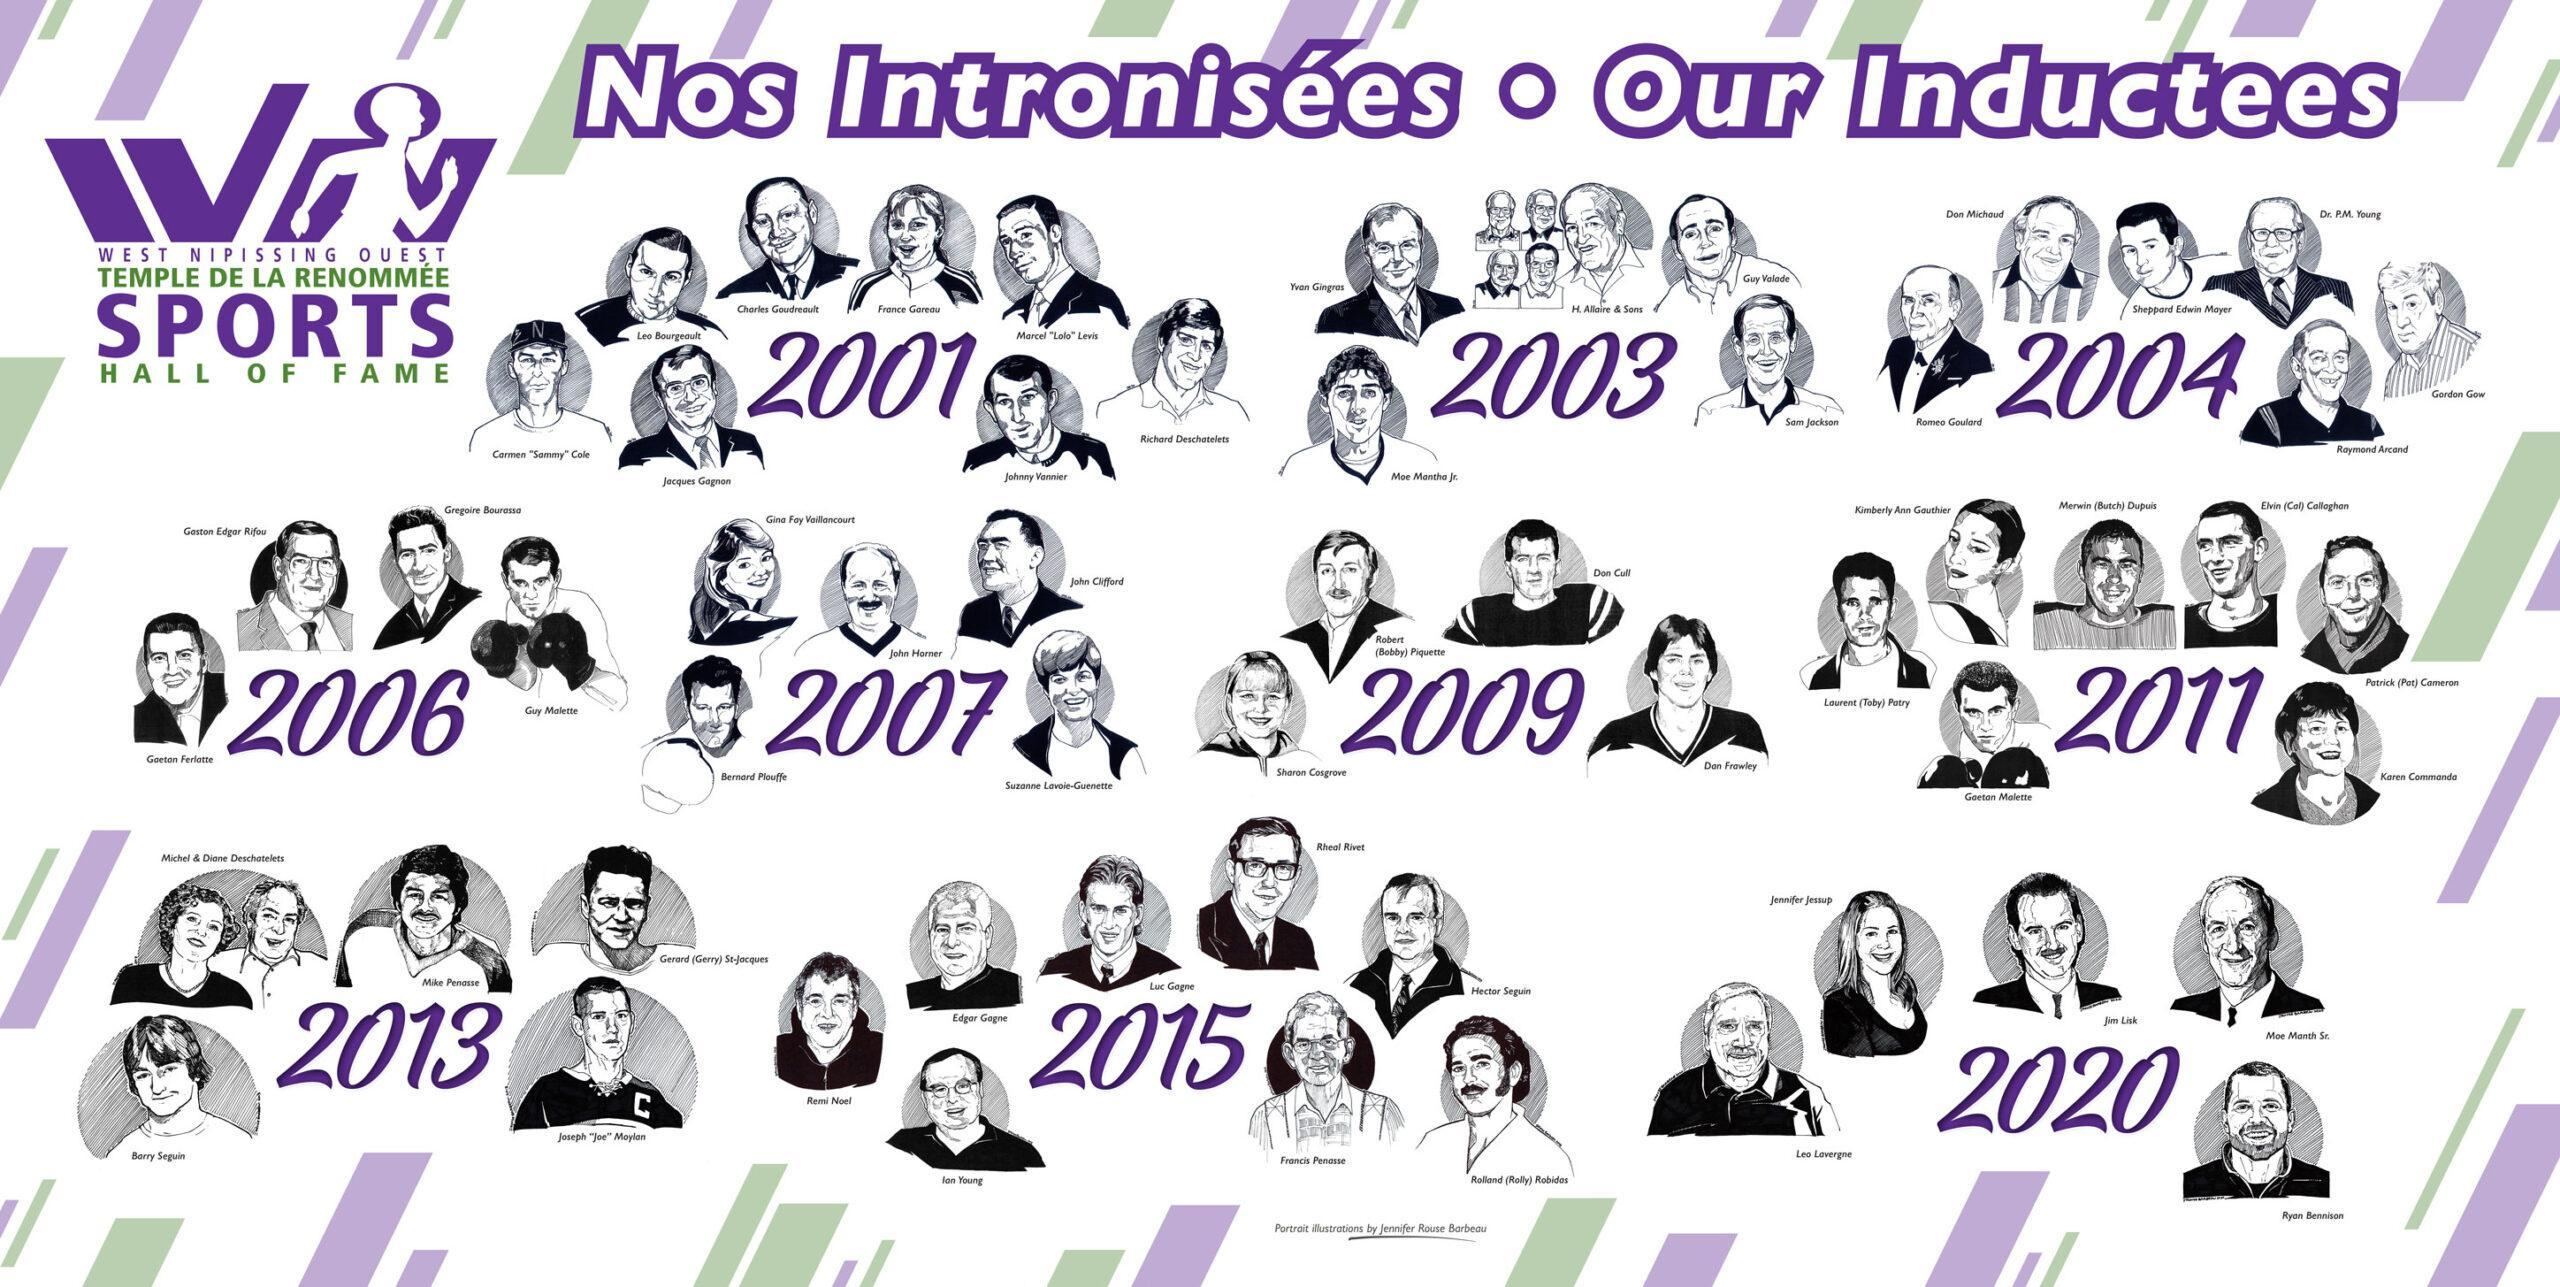 Visual representation of inductees from 2001-2020